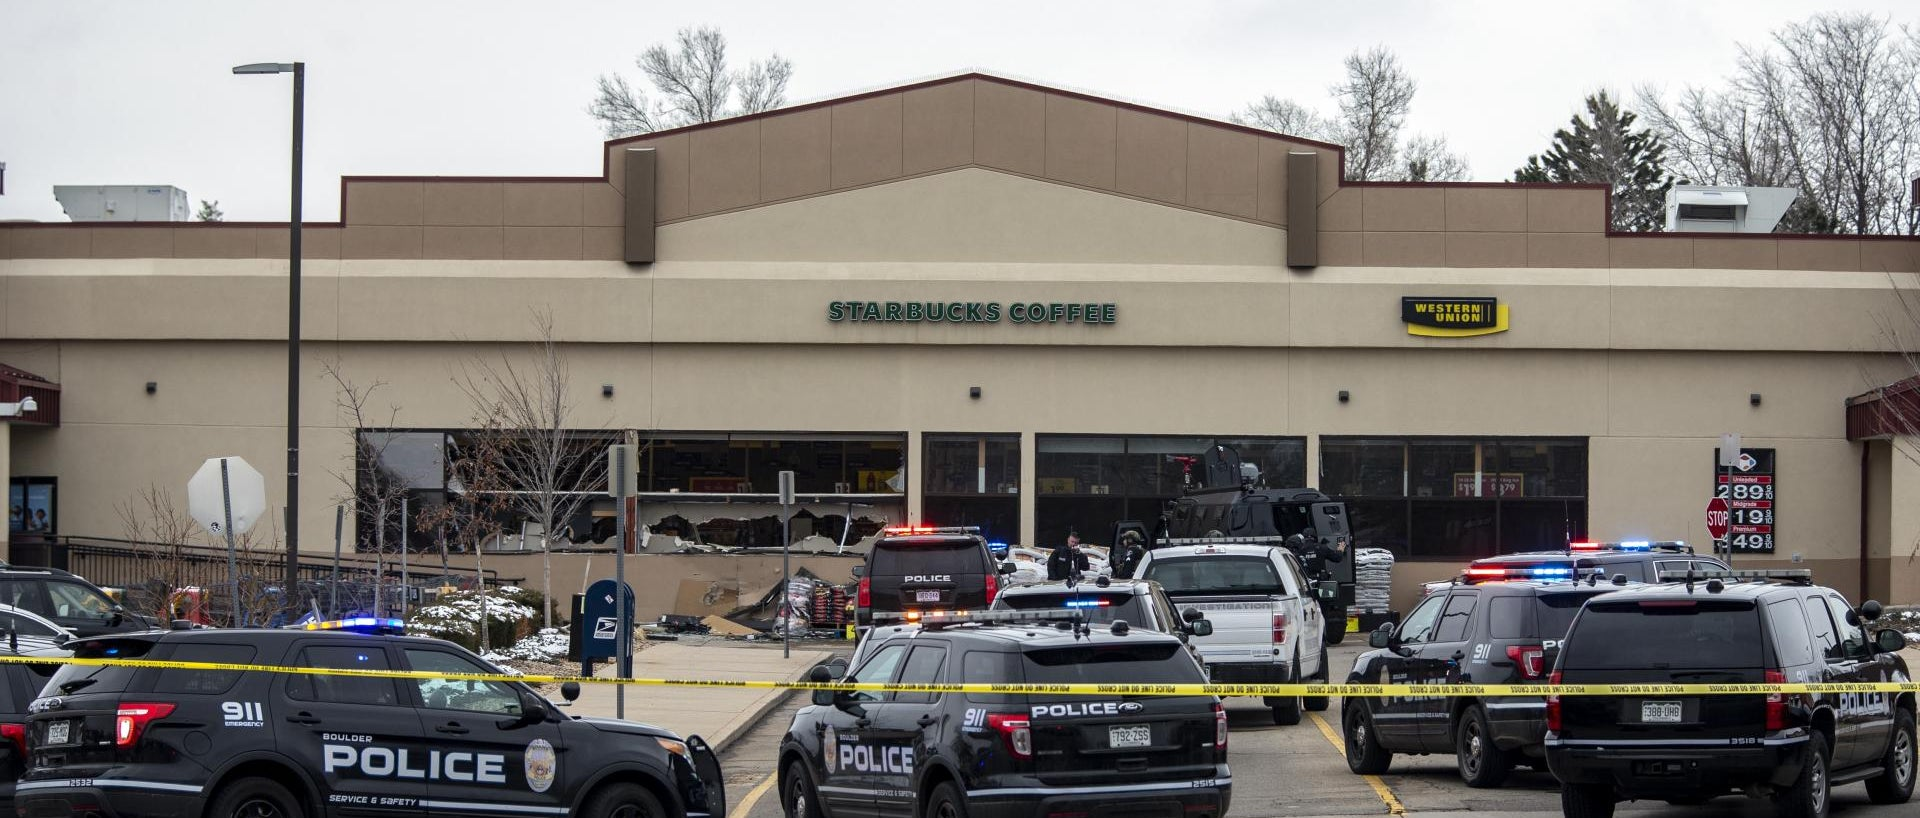 Shattered windows are shown in front of a King Soopers grocery store where a gunman opened fire on March 22, 2021 in Boulder, Colorado. Dozens of police responded to the afternoon shooting in which at least one witness described three people who appeared to be wounded, according to published reports.